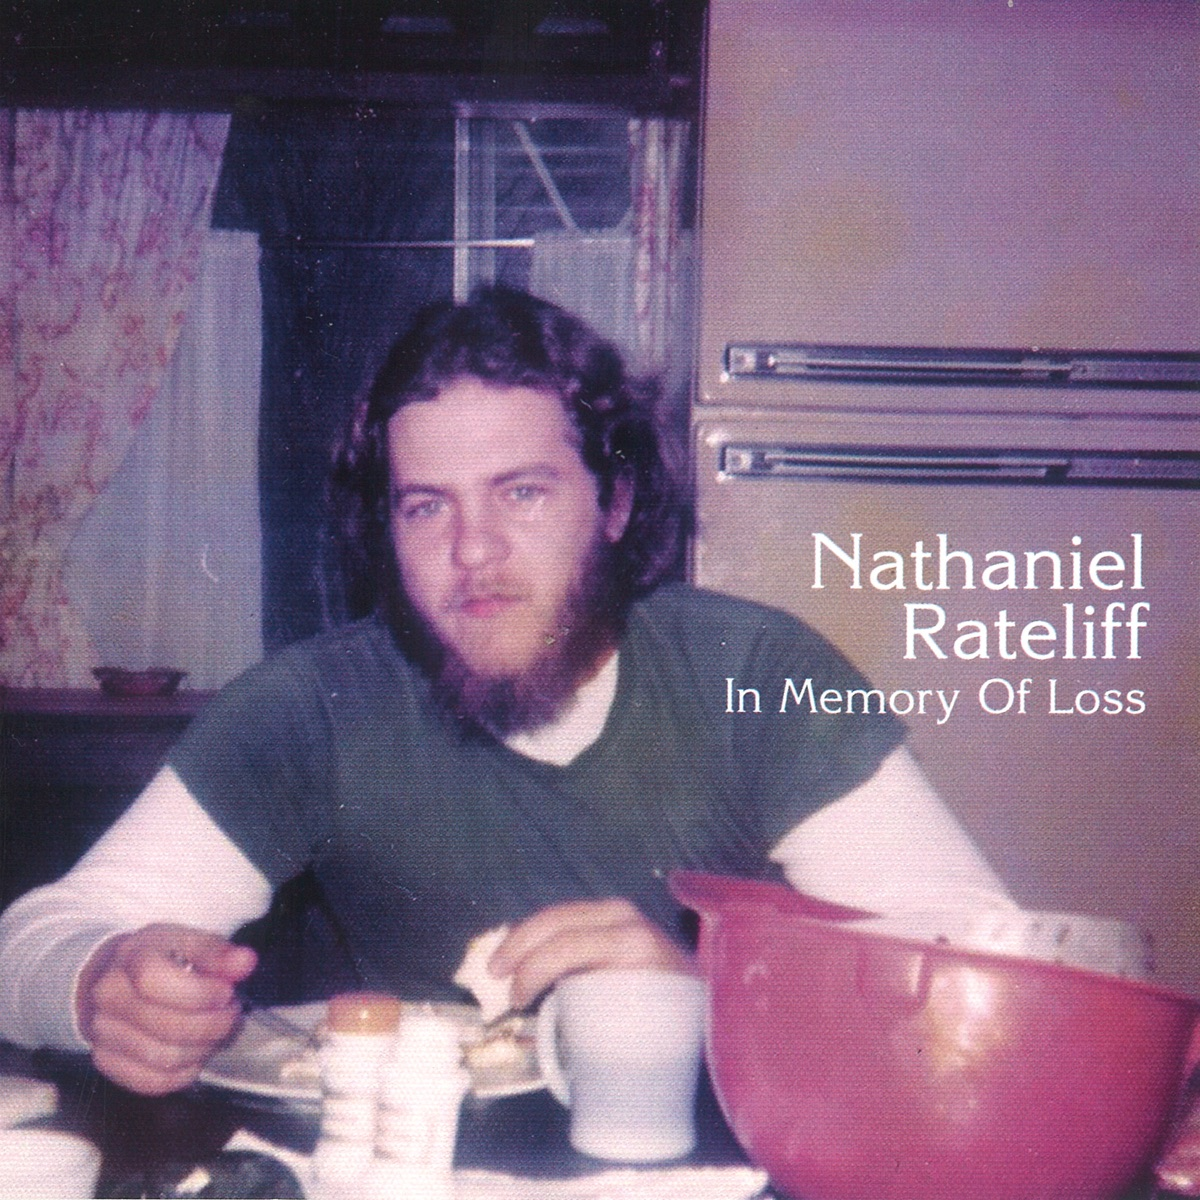 In Memory of Loss Deluxe Edition Nathaniel Rateliff CD cover